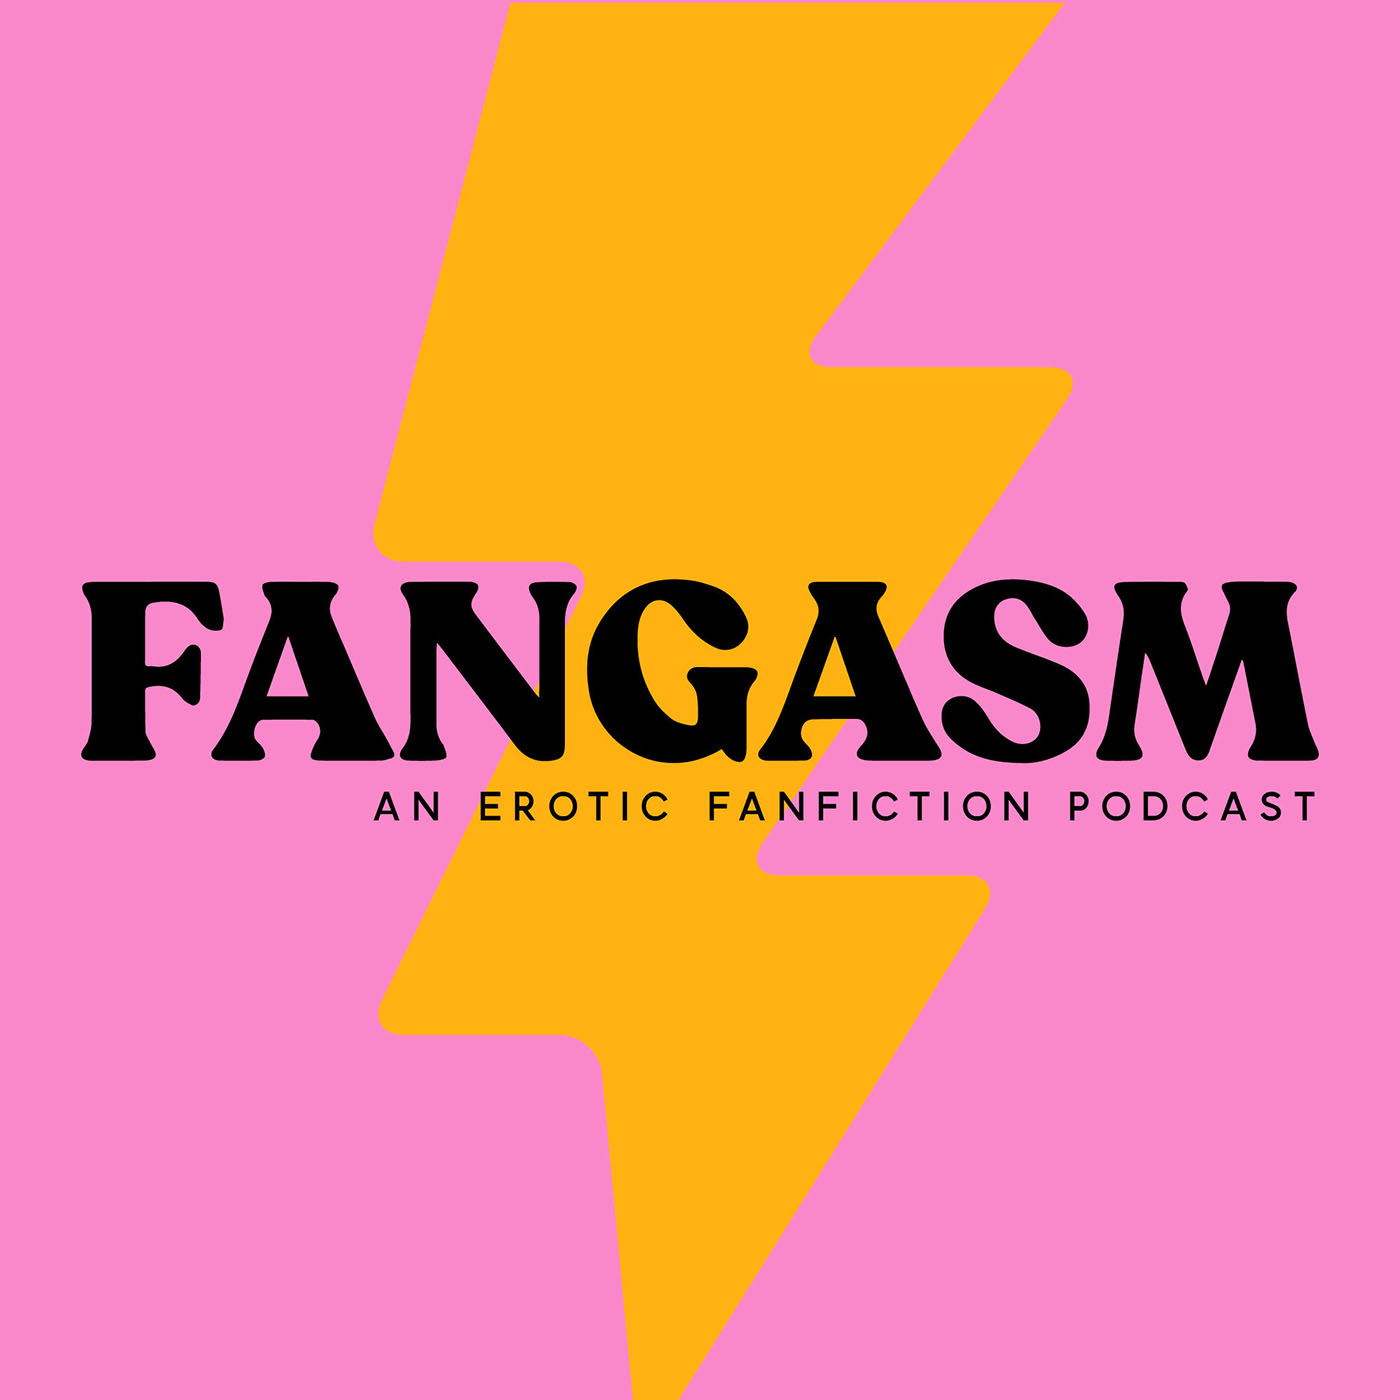 Best Episodes of Fangasm